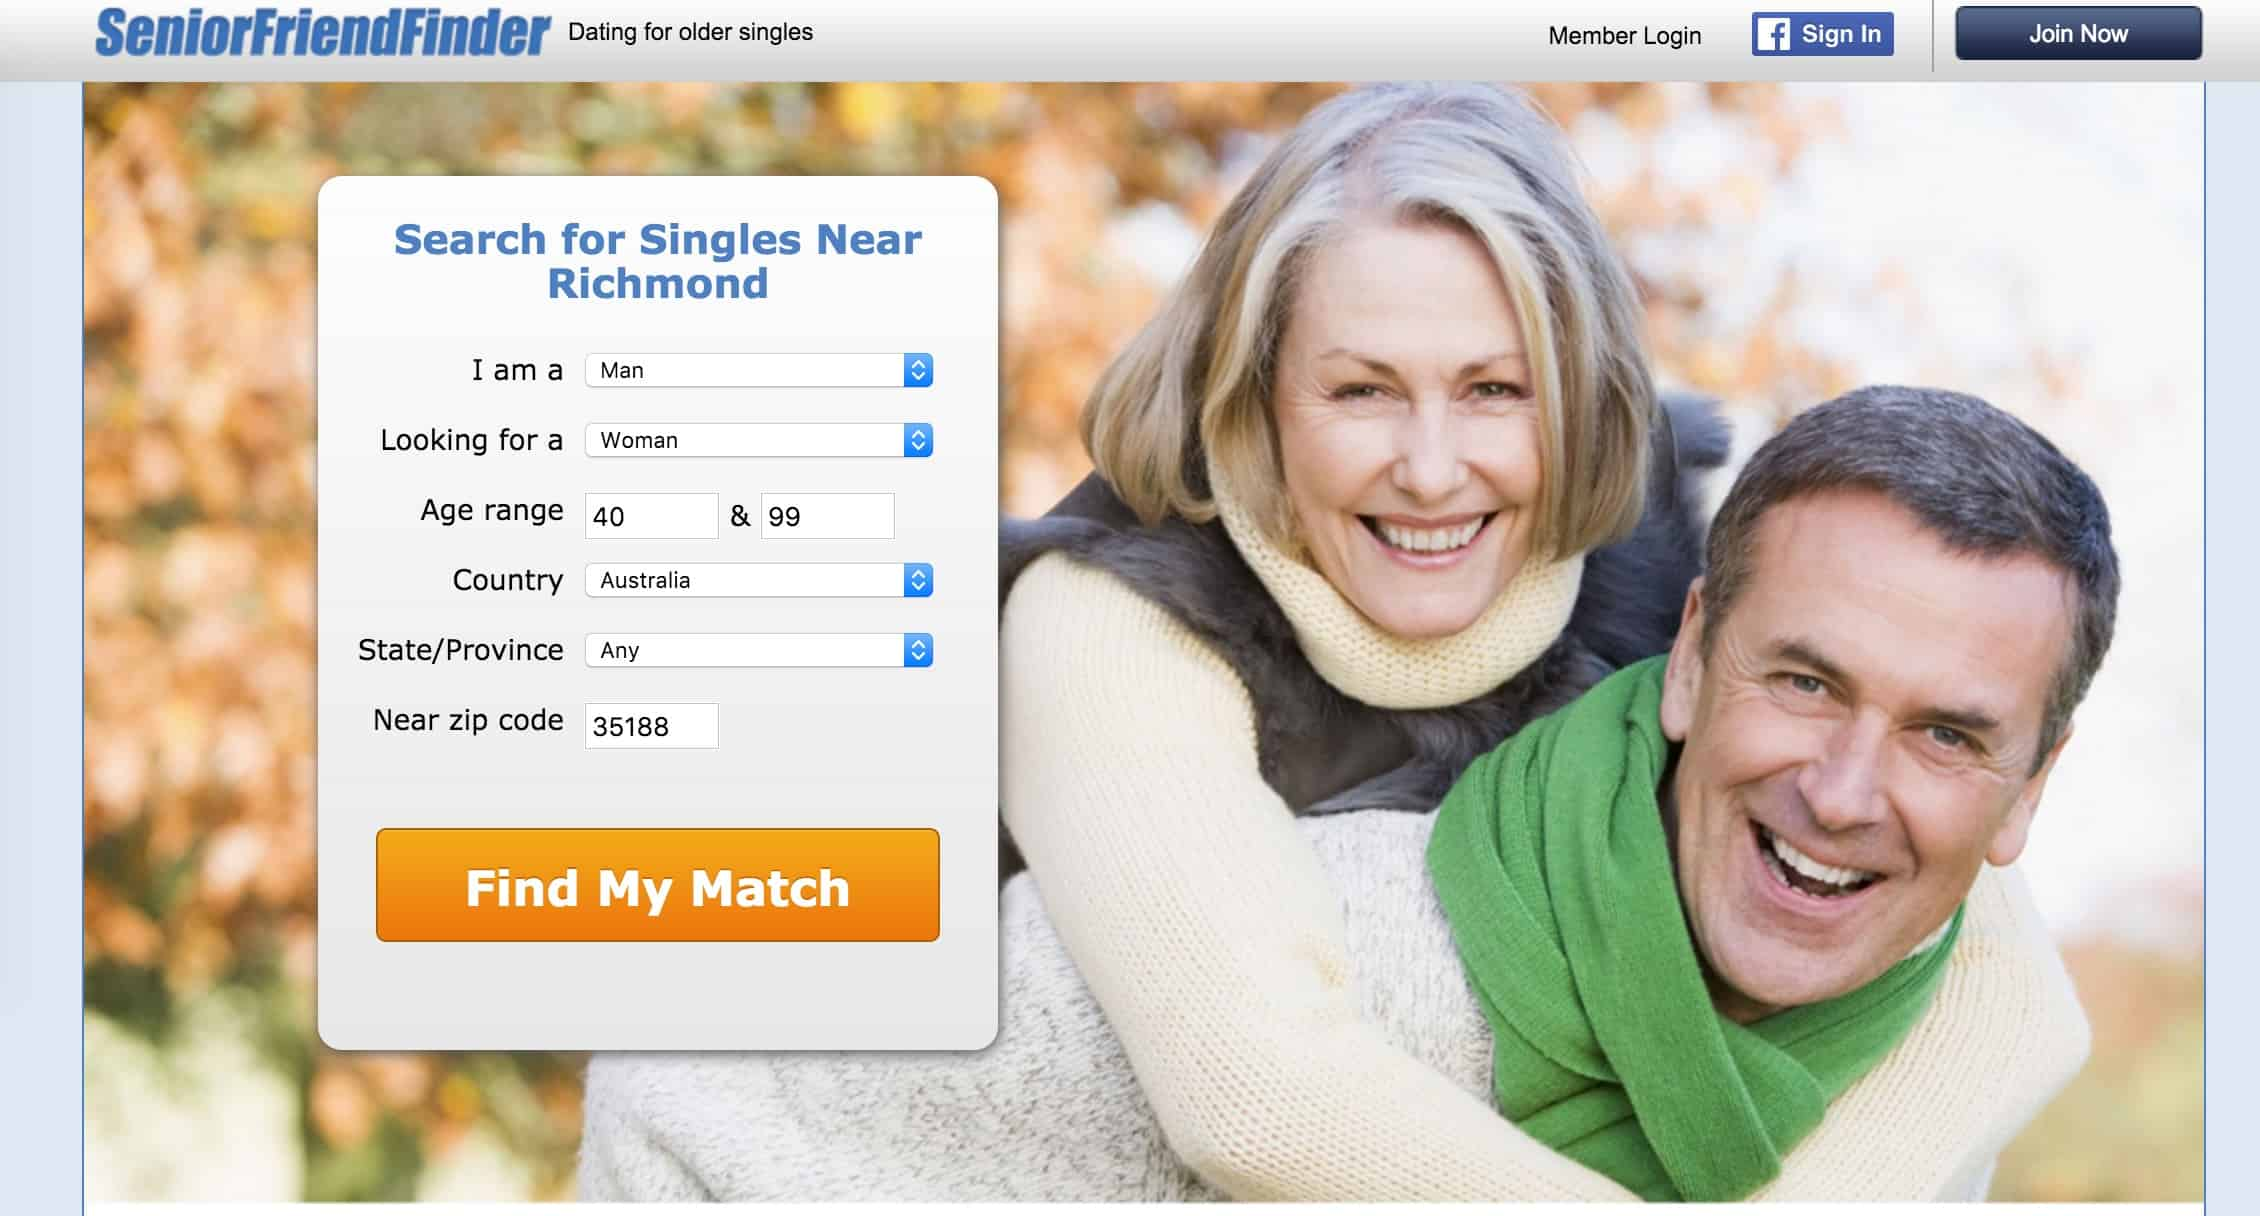 stites senior dating site 2018 top 10 senior dating sites reviews - check best dating sites & apps for seniors, save your money and efforts by signing up to the right dating website.